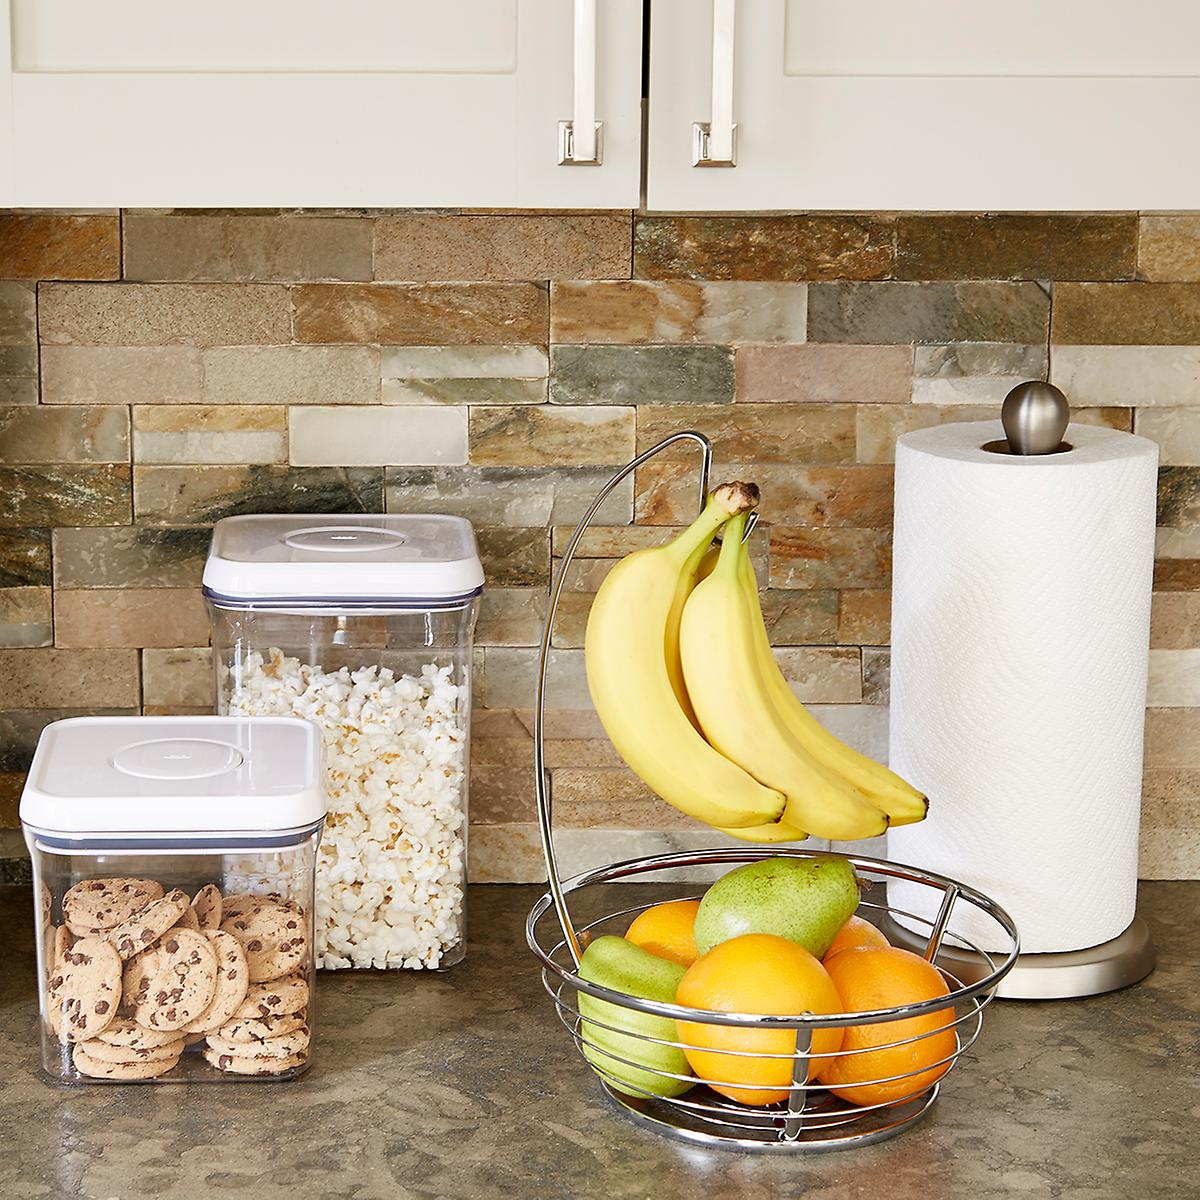 Kitchen Countertop Stores : Umbra Nickel Tug Paper Towel Holder The Container Store